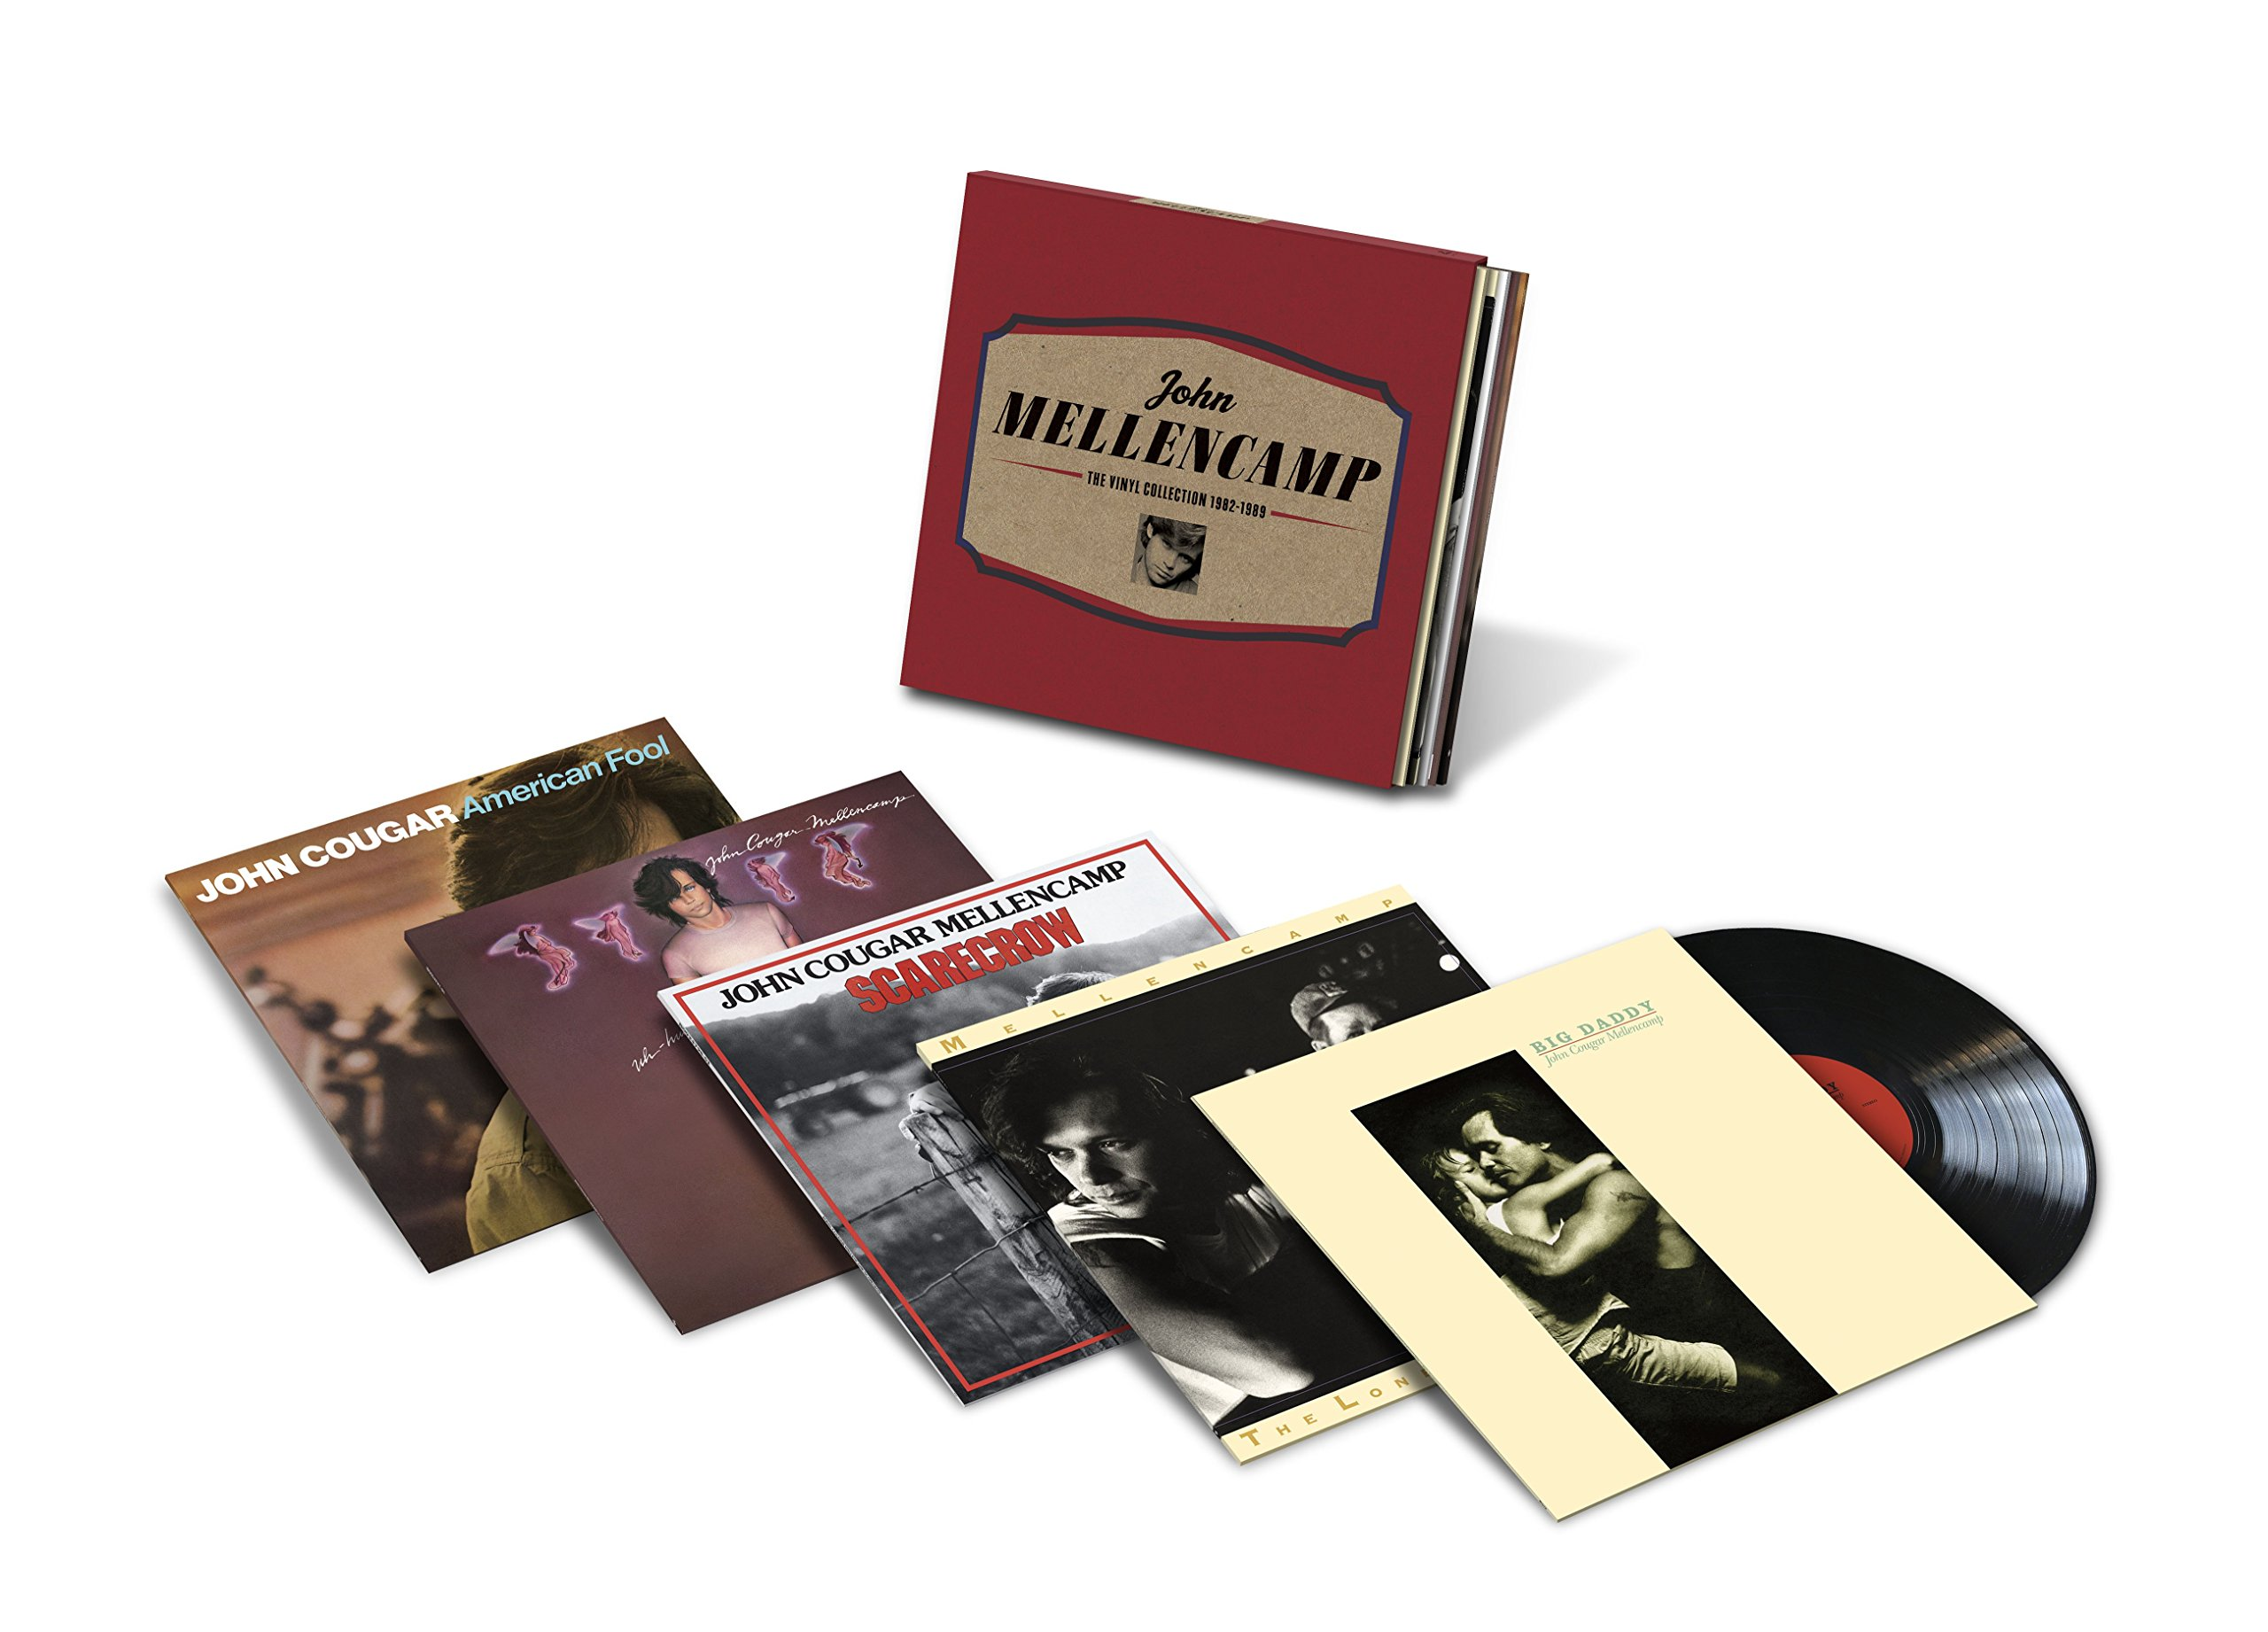 Vinilo : John Mellencamp - The Vinyl Collection 1982-1989 (Boxed Set, Oversize Item Split, 5 Disc)